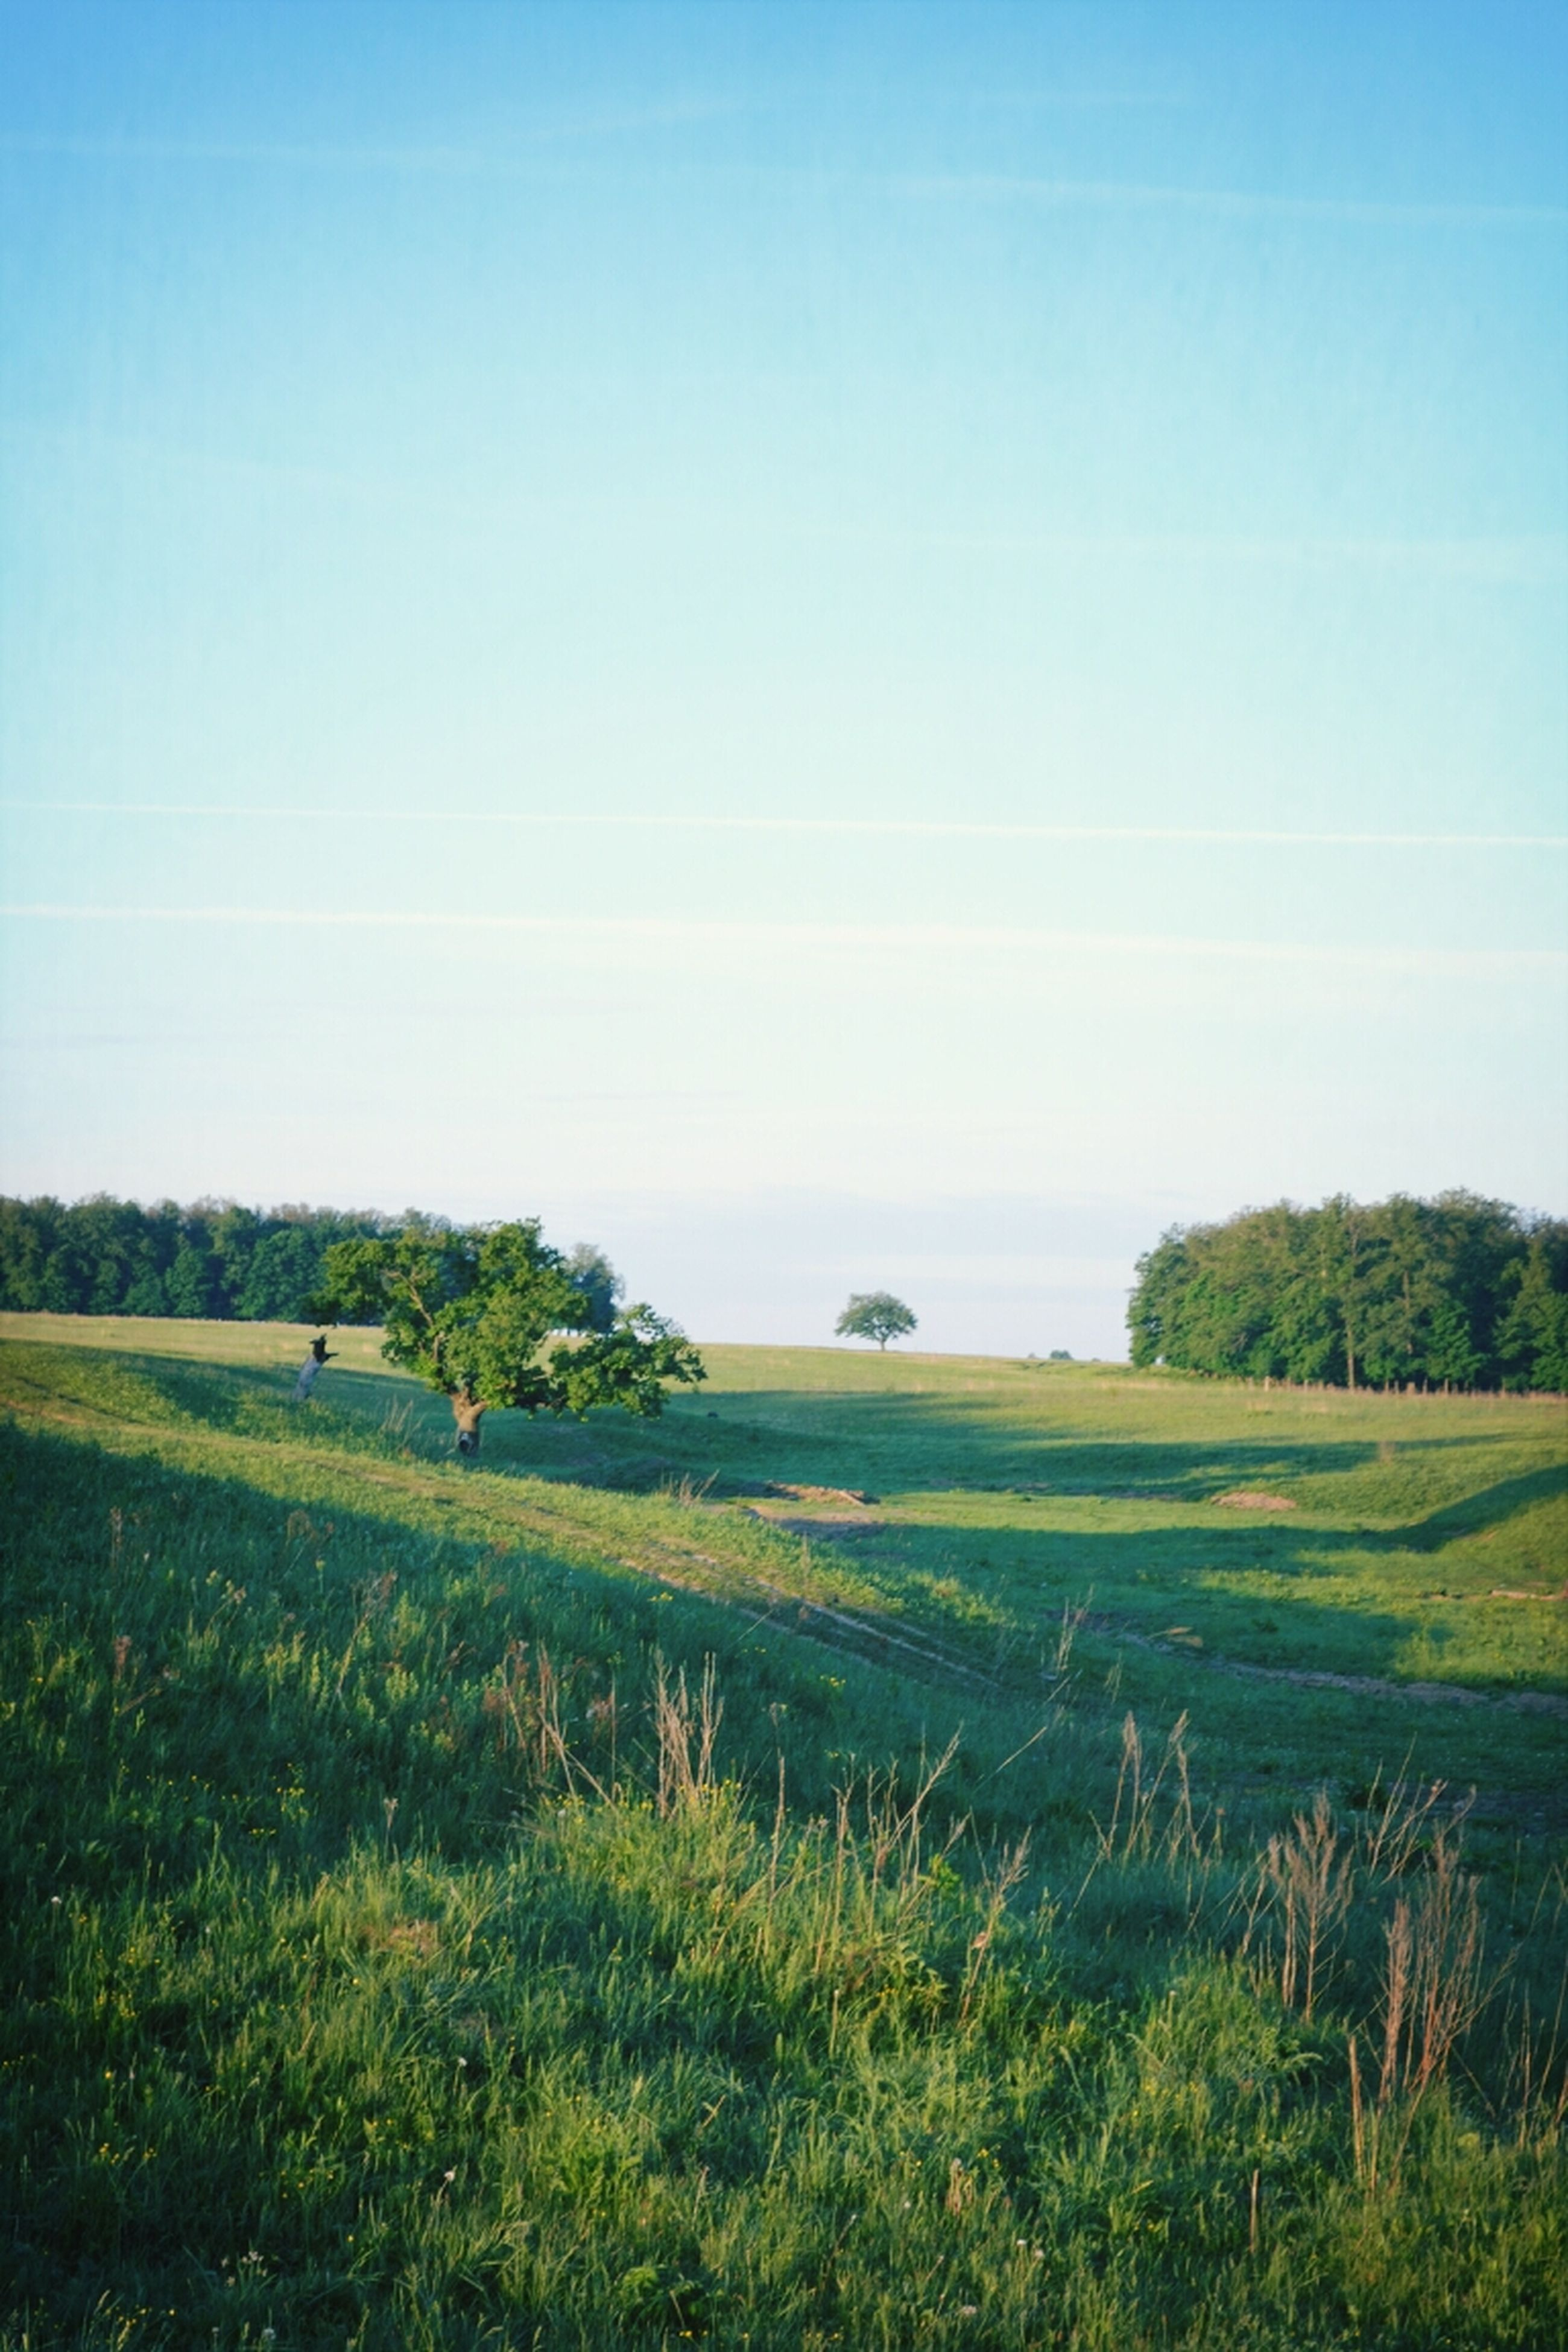 tranquil scene, tranquility, field, landscape, blue, beauty in nature, scenics, grass, growth, nature, tree, clear sky, copy space, green color, rural scene, sky, agriculture, idyllic, plant, day